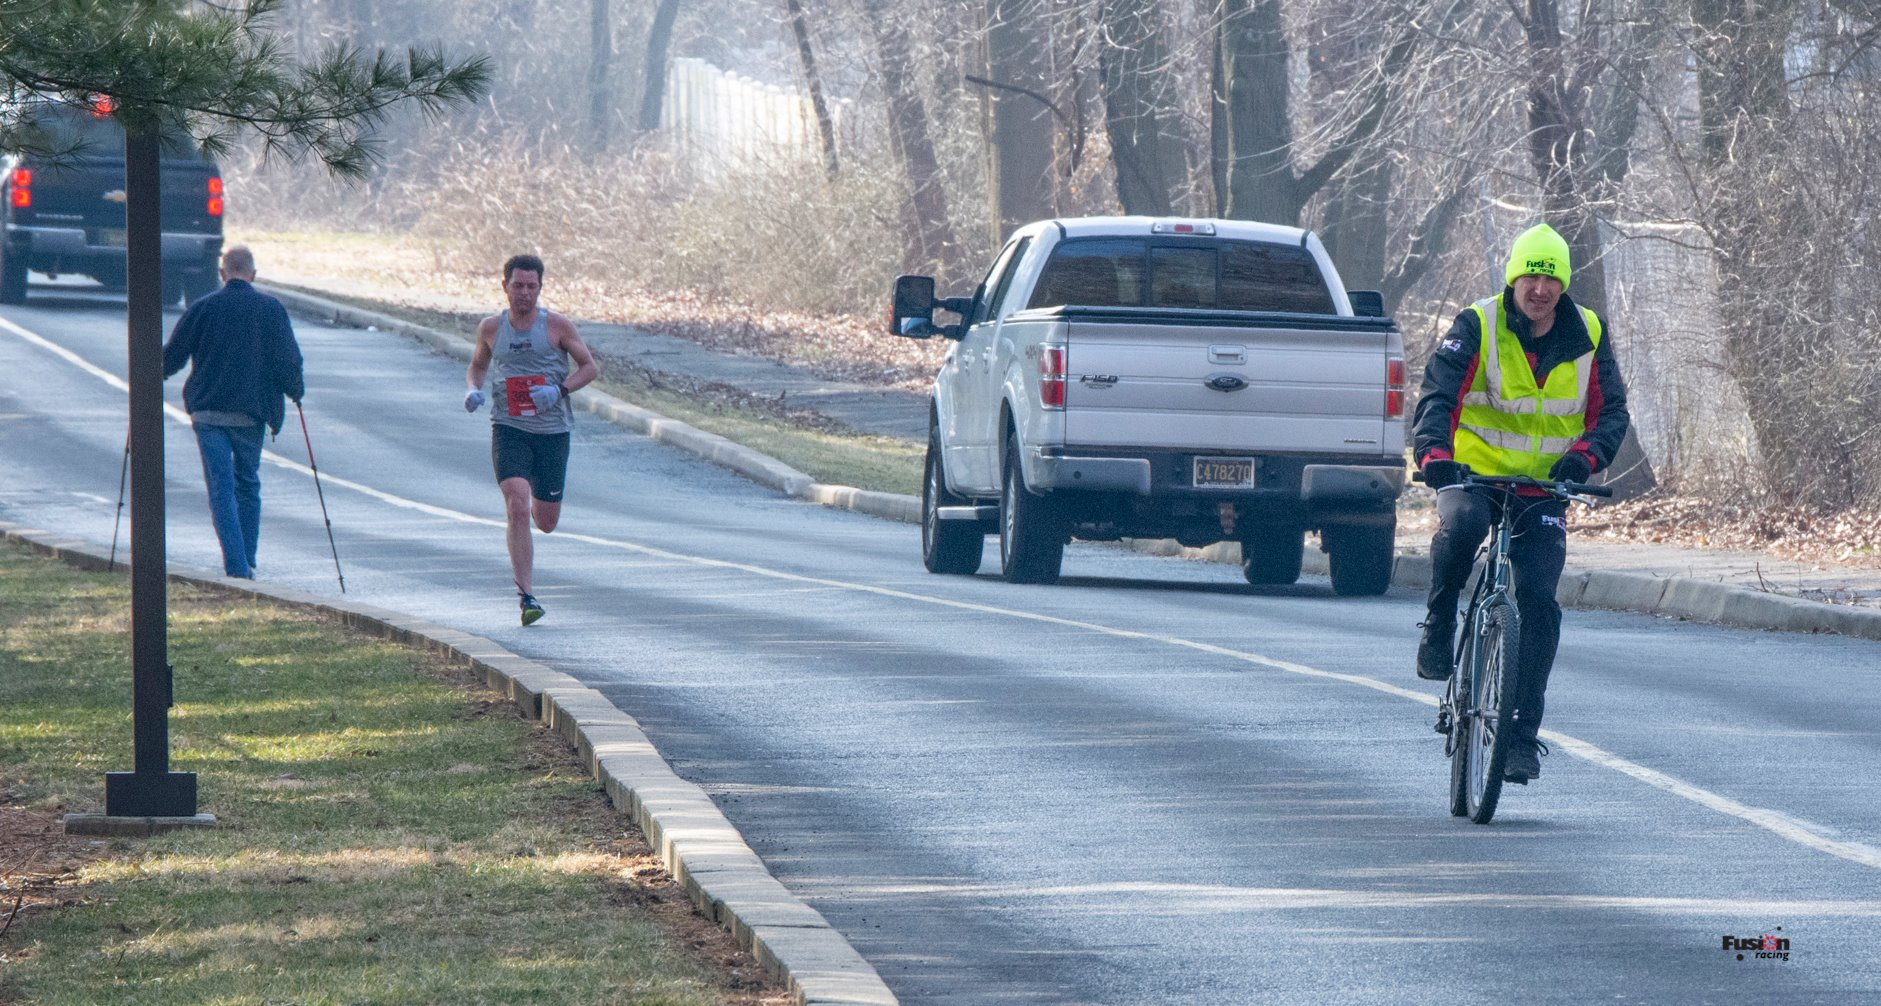 Michael DiGennaro (middle) leads the race participants and strides towards a record-breaking finish.